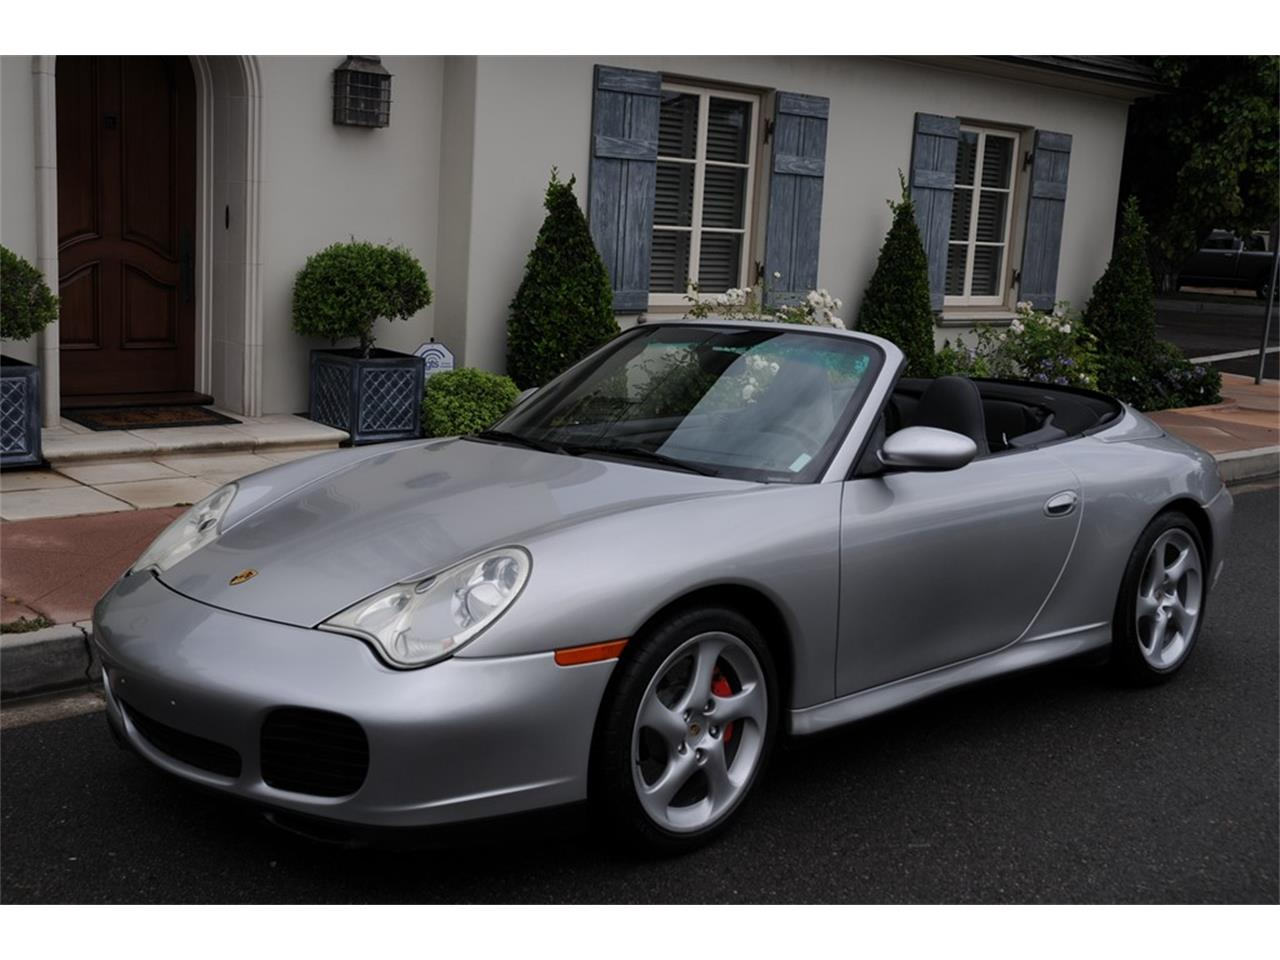 Large Picture of '04 911 Carrera 4S Cabriolet located in California - QK9K